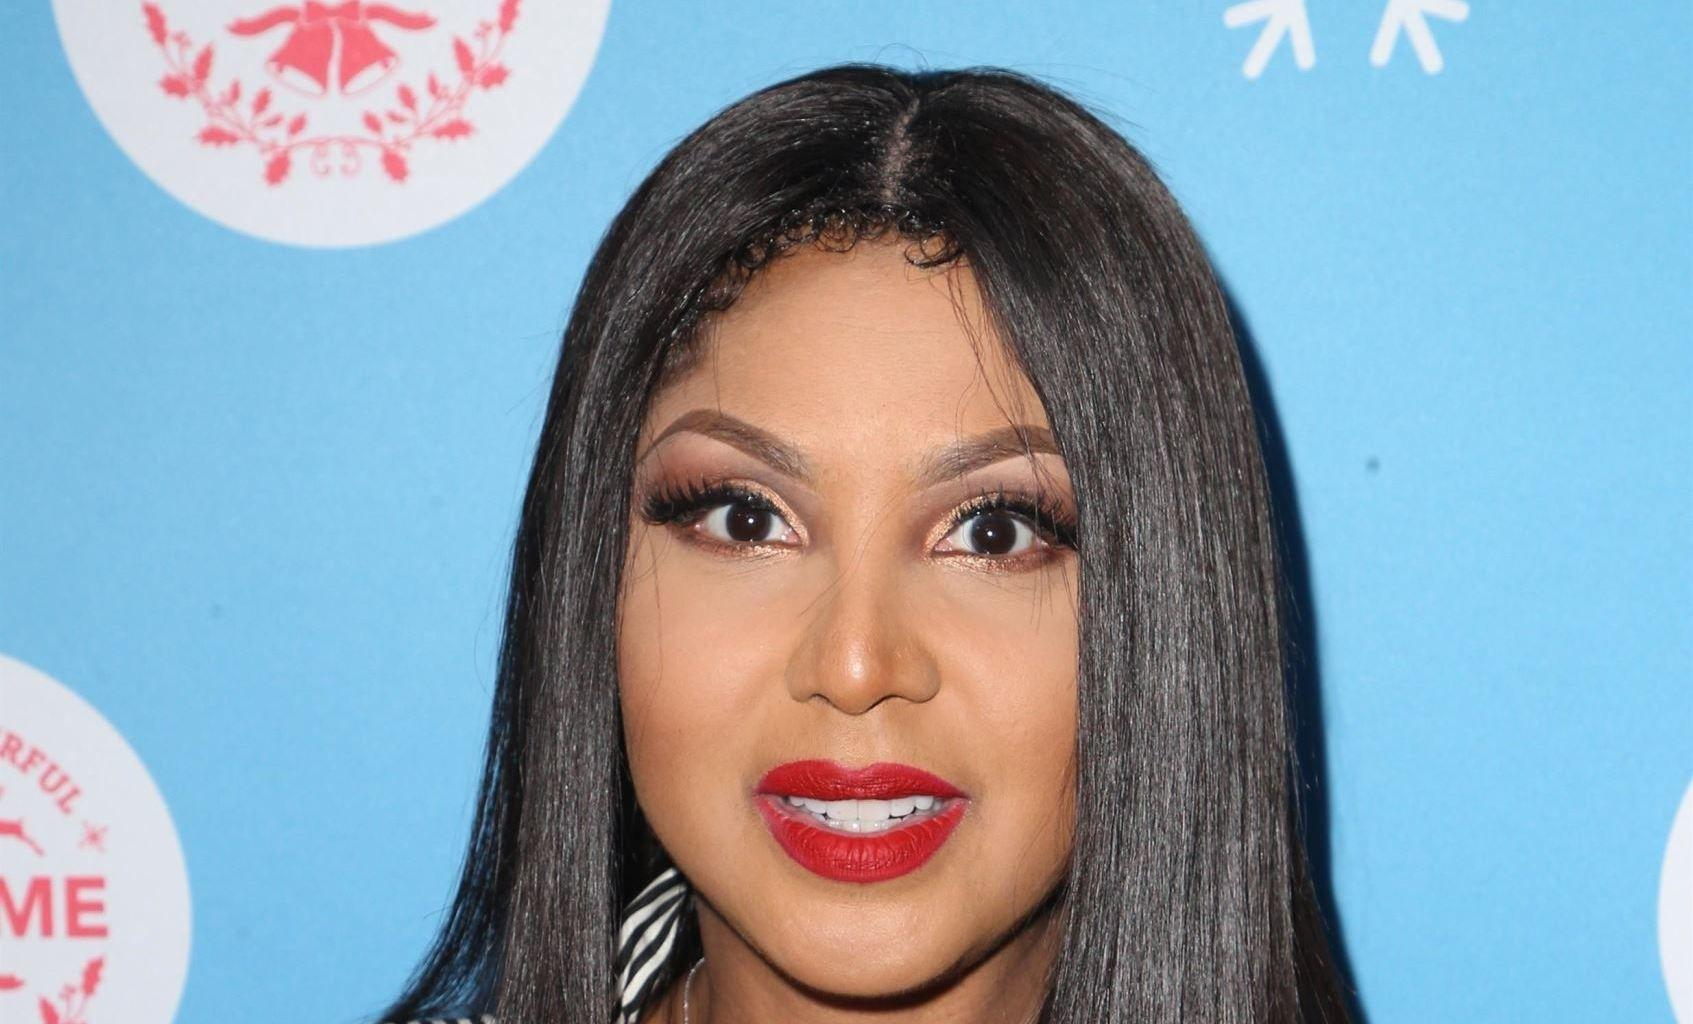 Toni Braxton Reveals The Lyrics To Her New Song 'Do It' And Fans Are In Awe: 'Every Lyric Spells Sincerity'